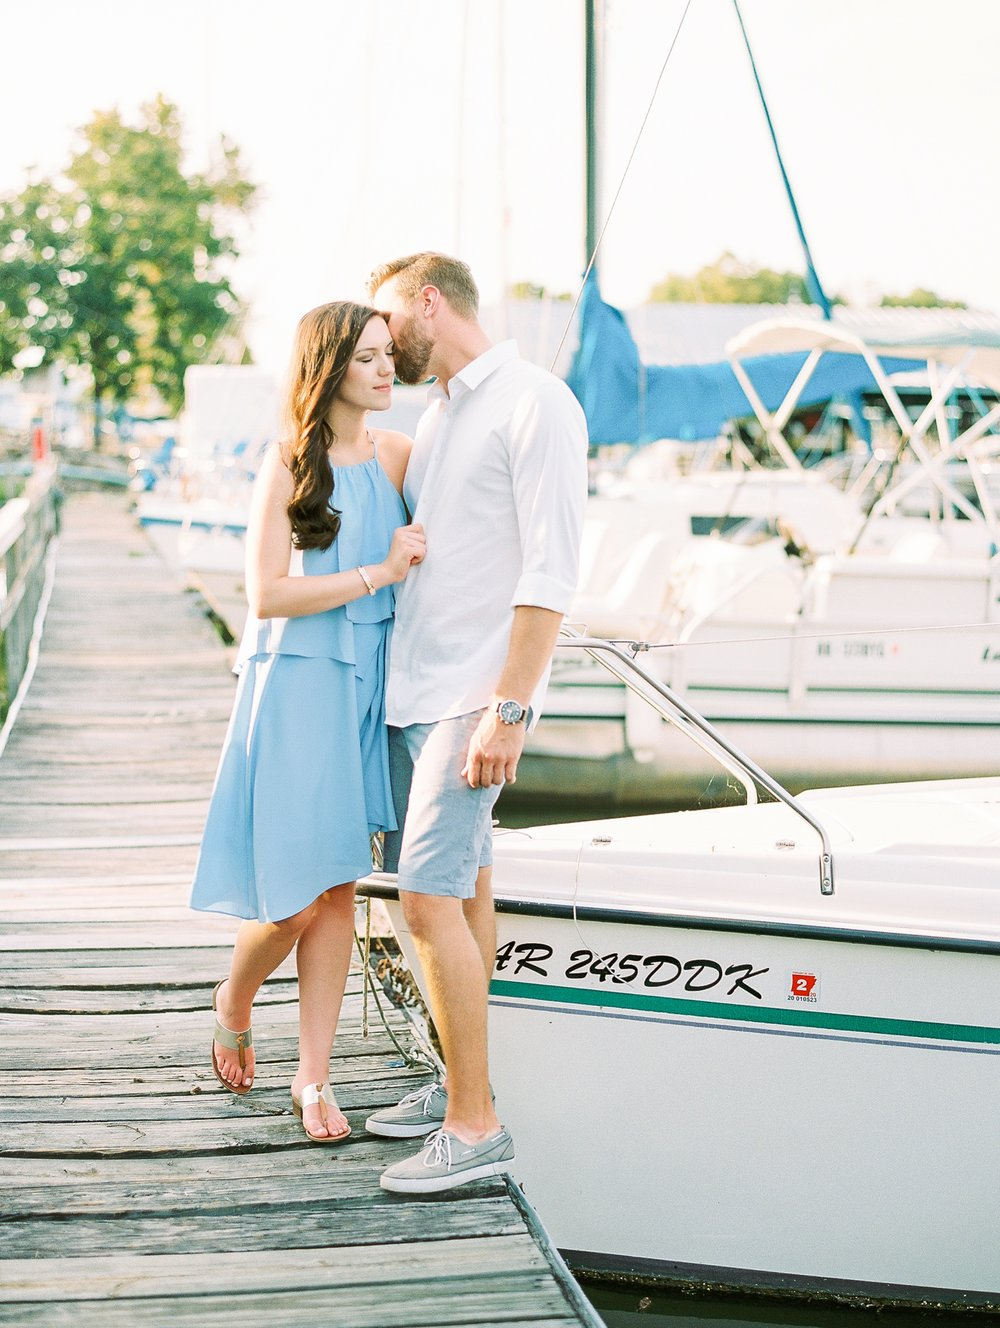 Nautical Boat Engagement Session Film Photographer_0561.jpg